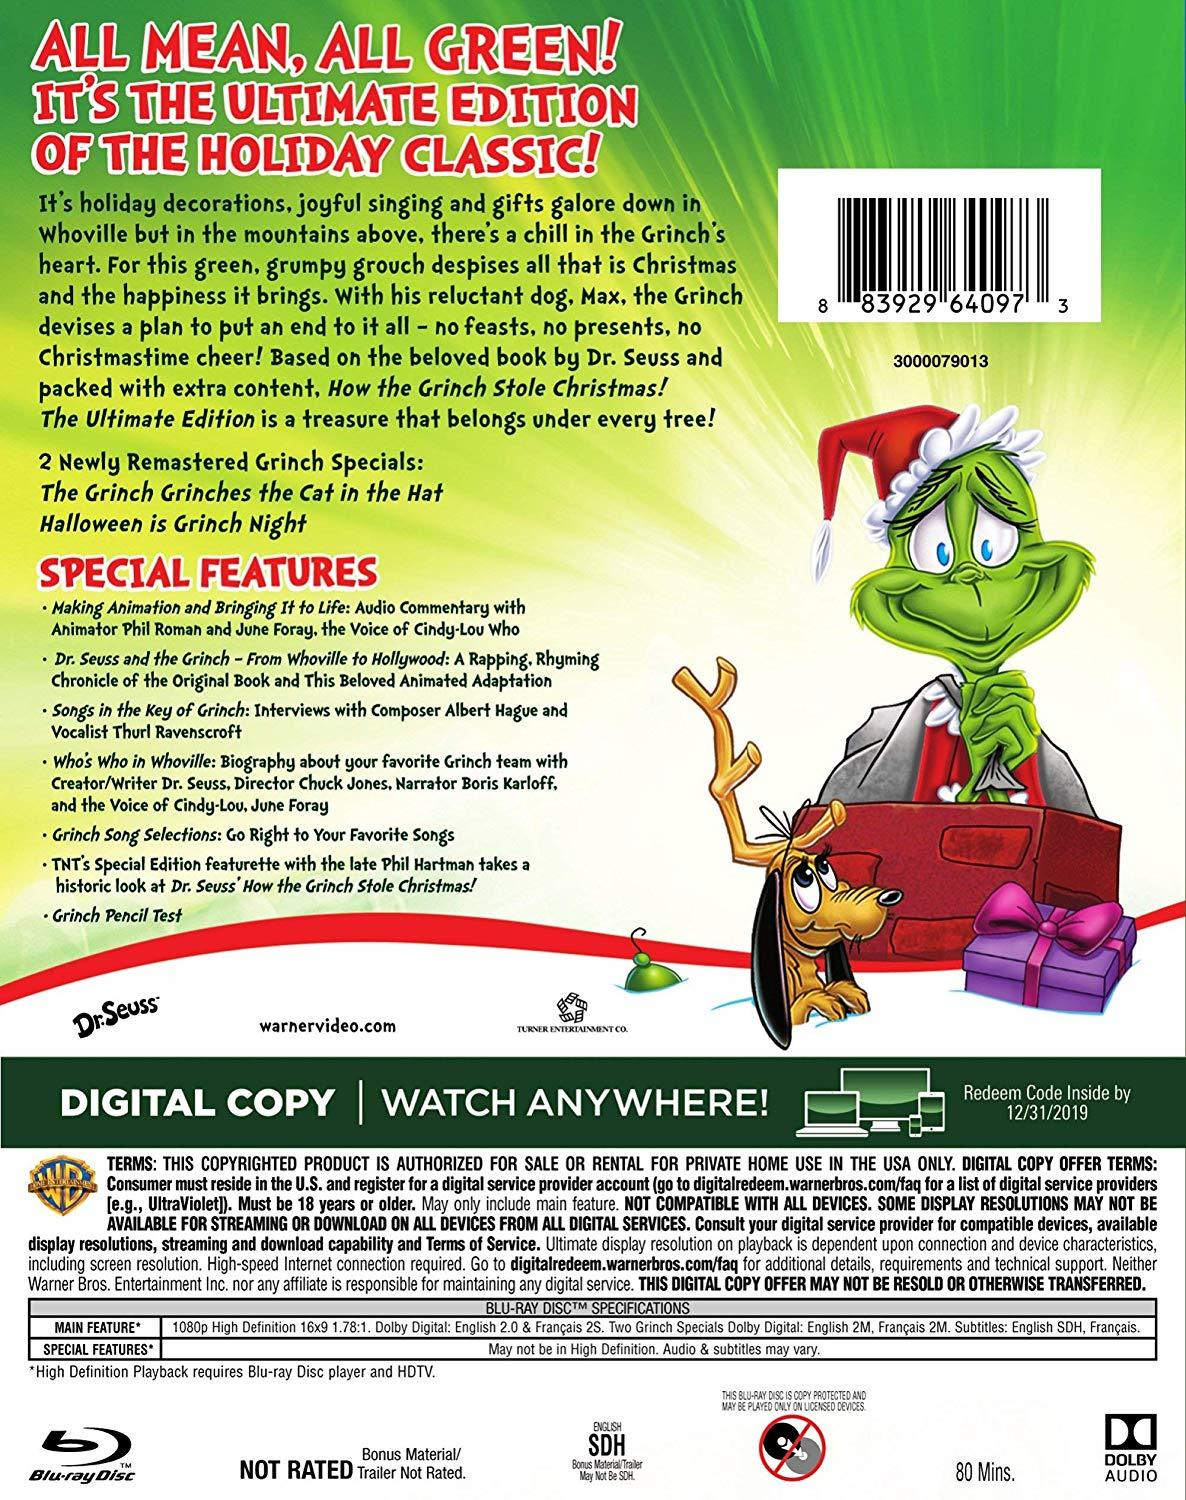 How The Grinch Stole Christmas 1966 Dvd.How The Grinch Stole Christmas 1966 Ultimate Edition Blu